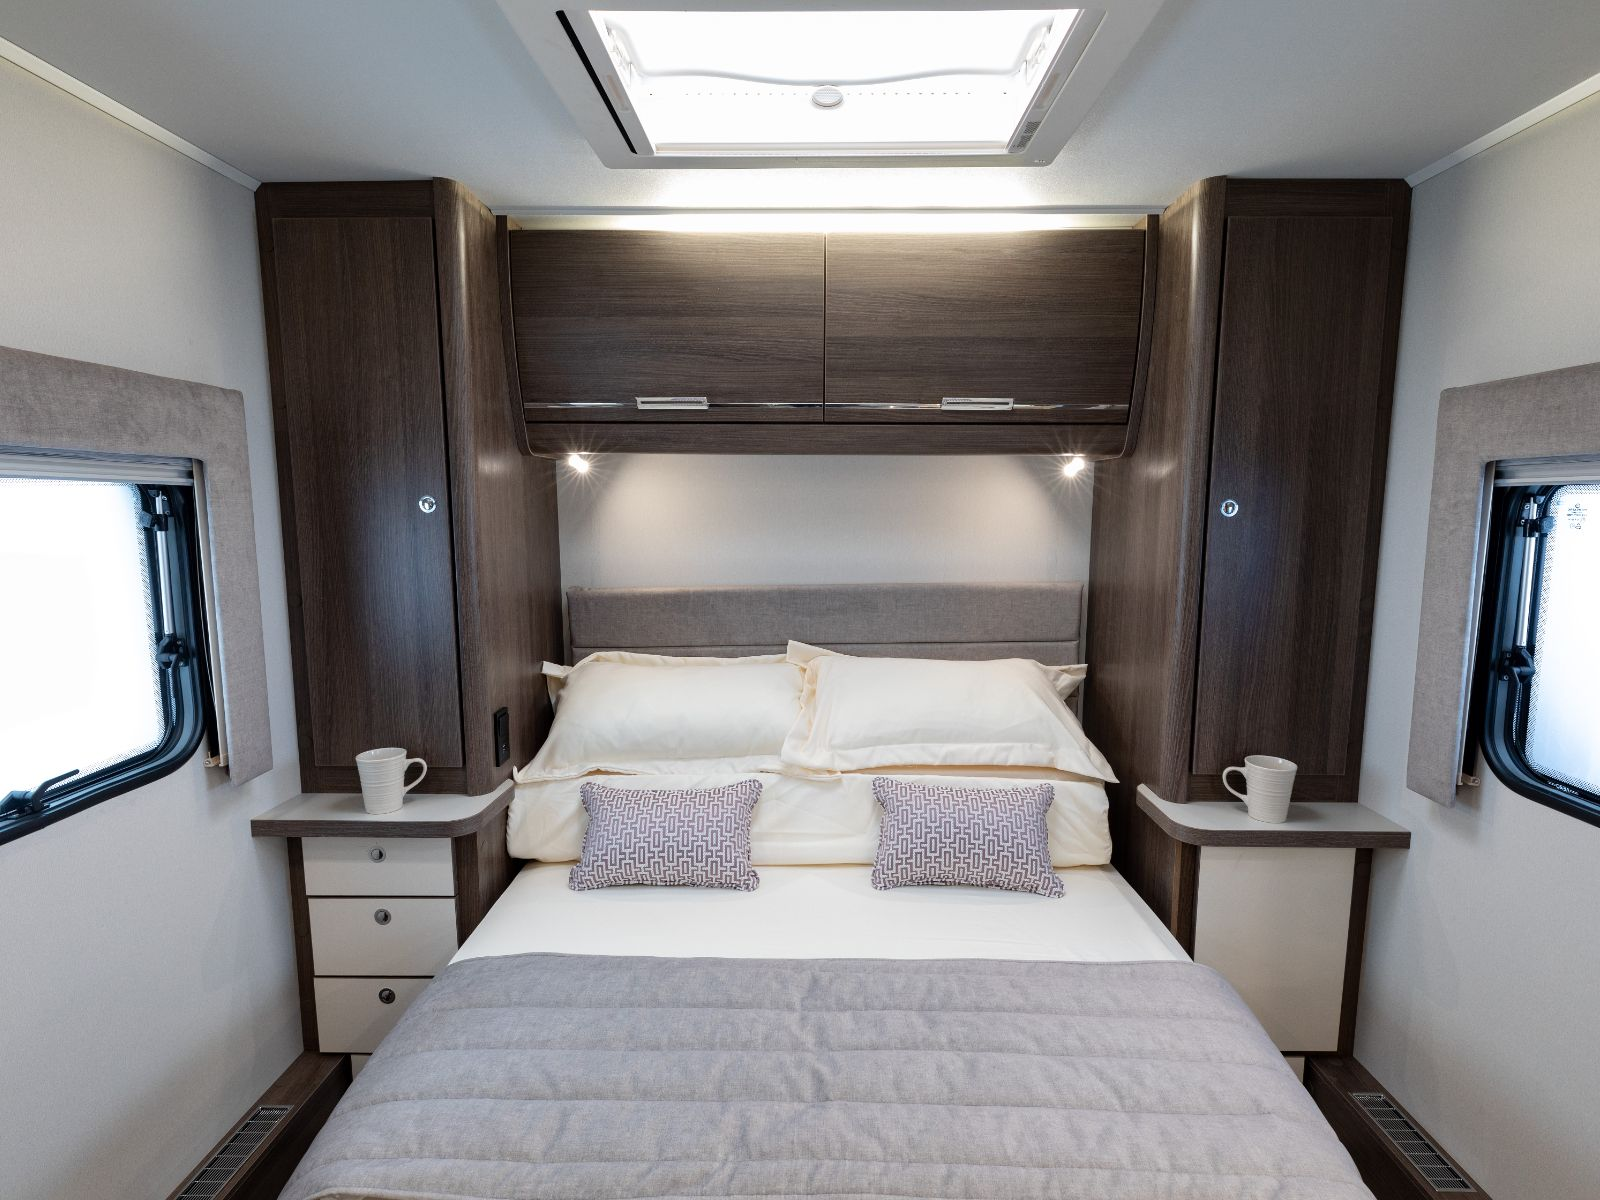 Bedroom layout with double bed and overhead storage'